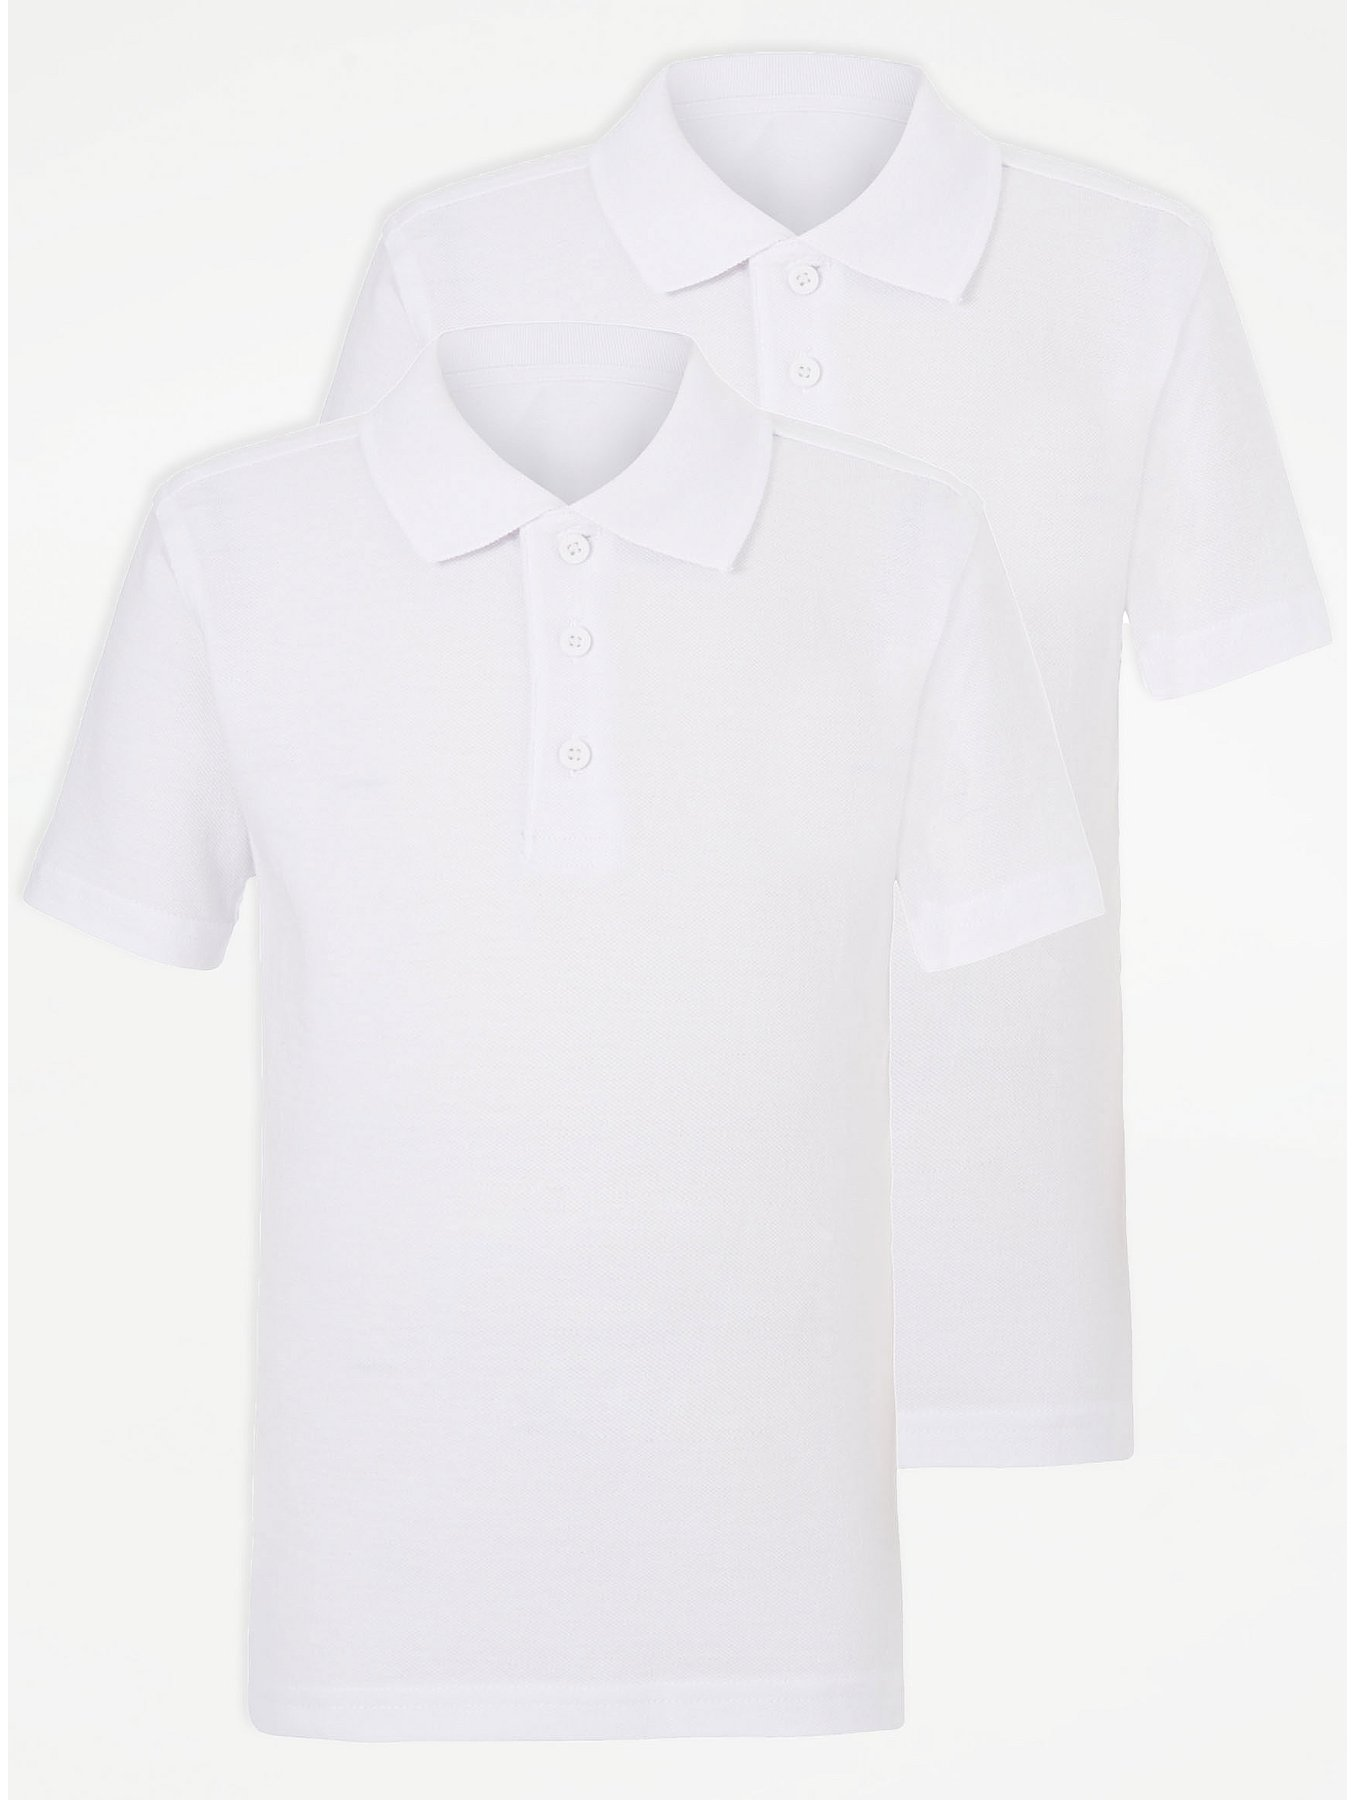 63c18c3e06 White Slim Fit School Polo Shirt 2 Pack